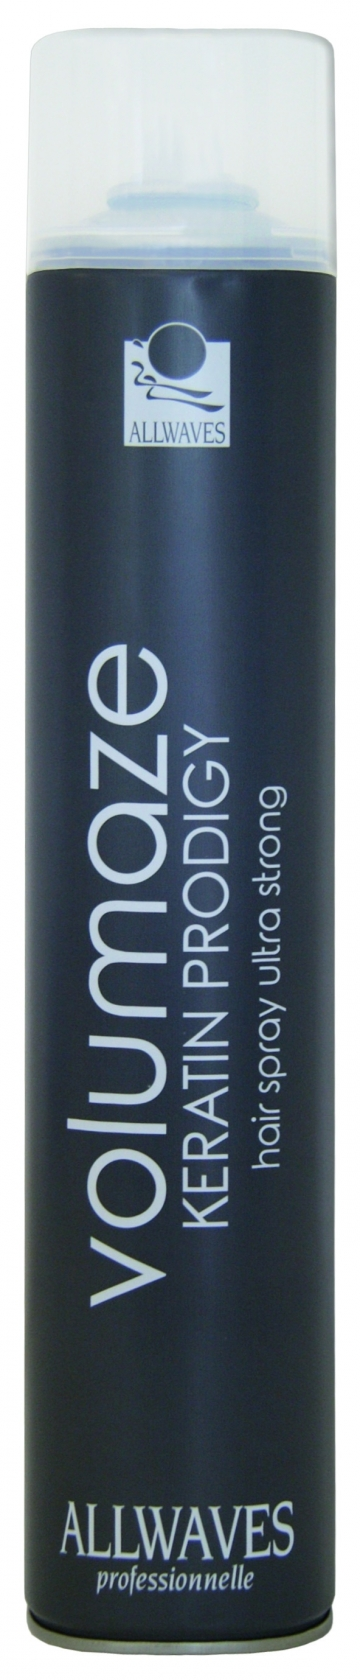 Allwaves Volumaze Keratin Prodigy Hair Spray Ultra Strong 750 ml - objemový lak na vlasy s keratinem